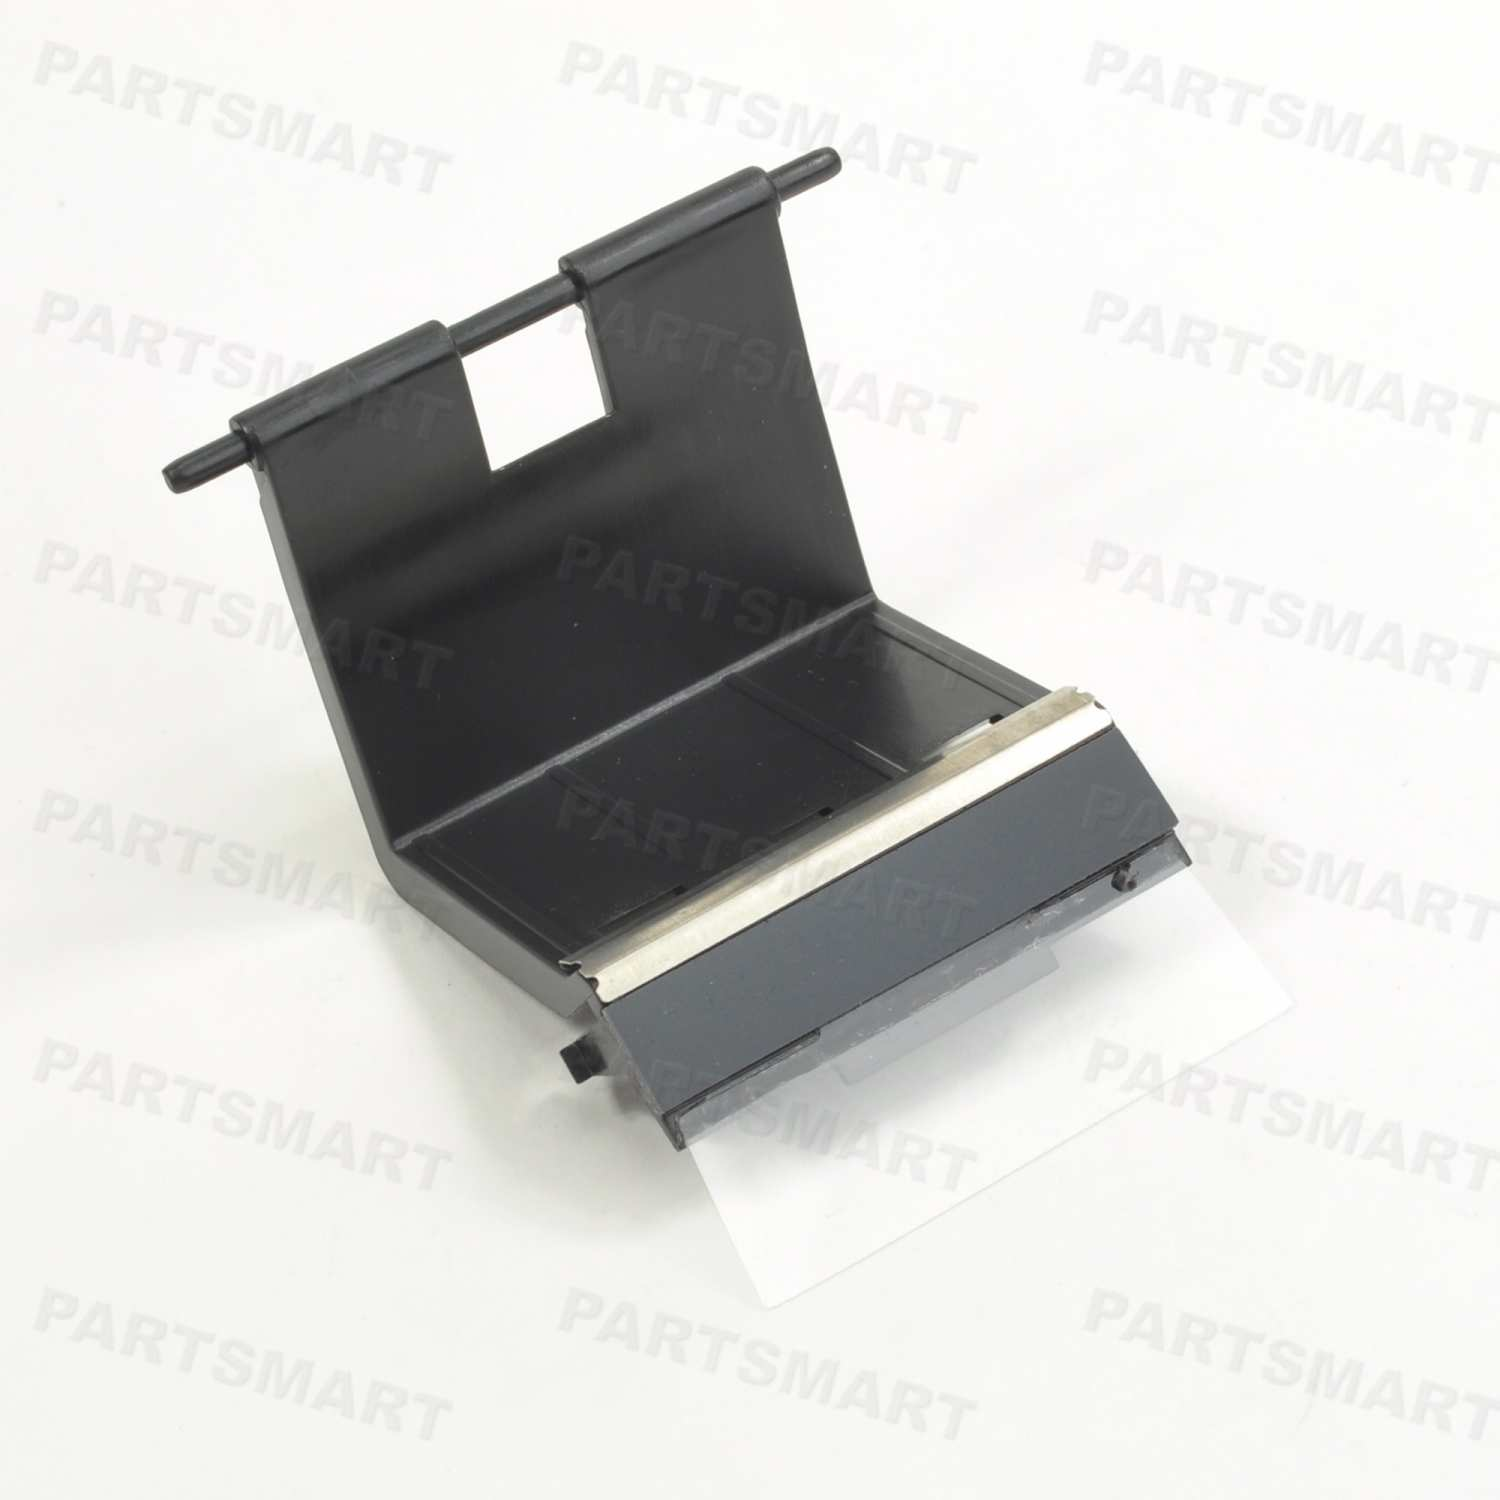 SP-SM1510 Separation Pad for Samsung ML-1510, ML-1710